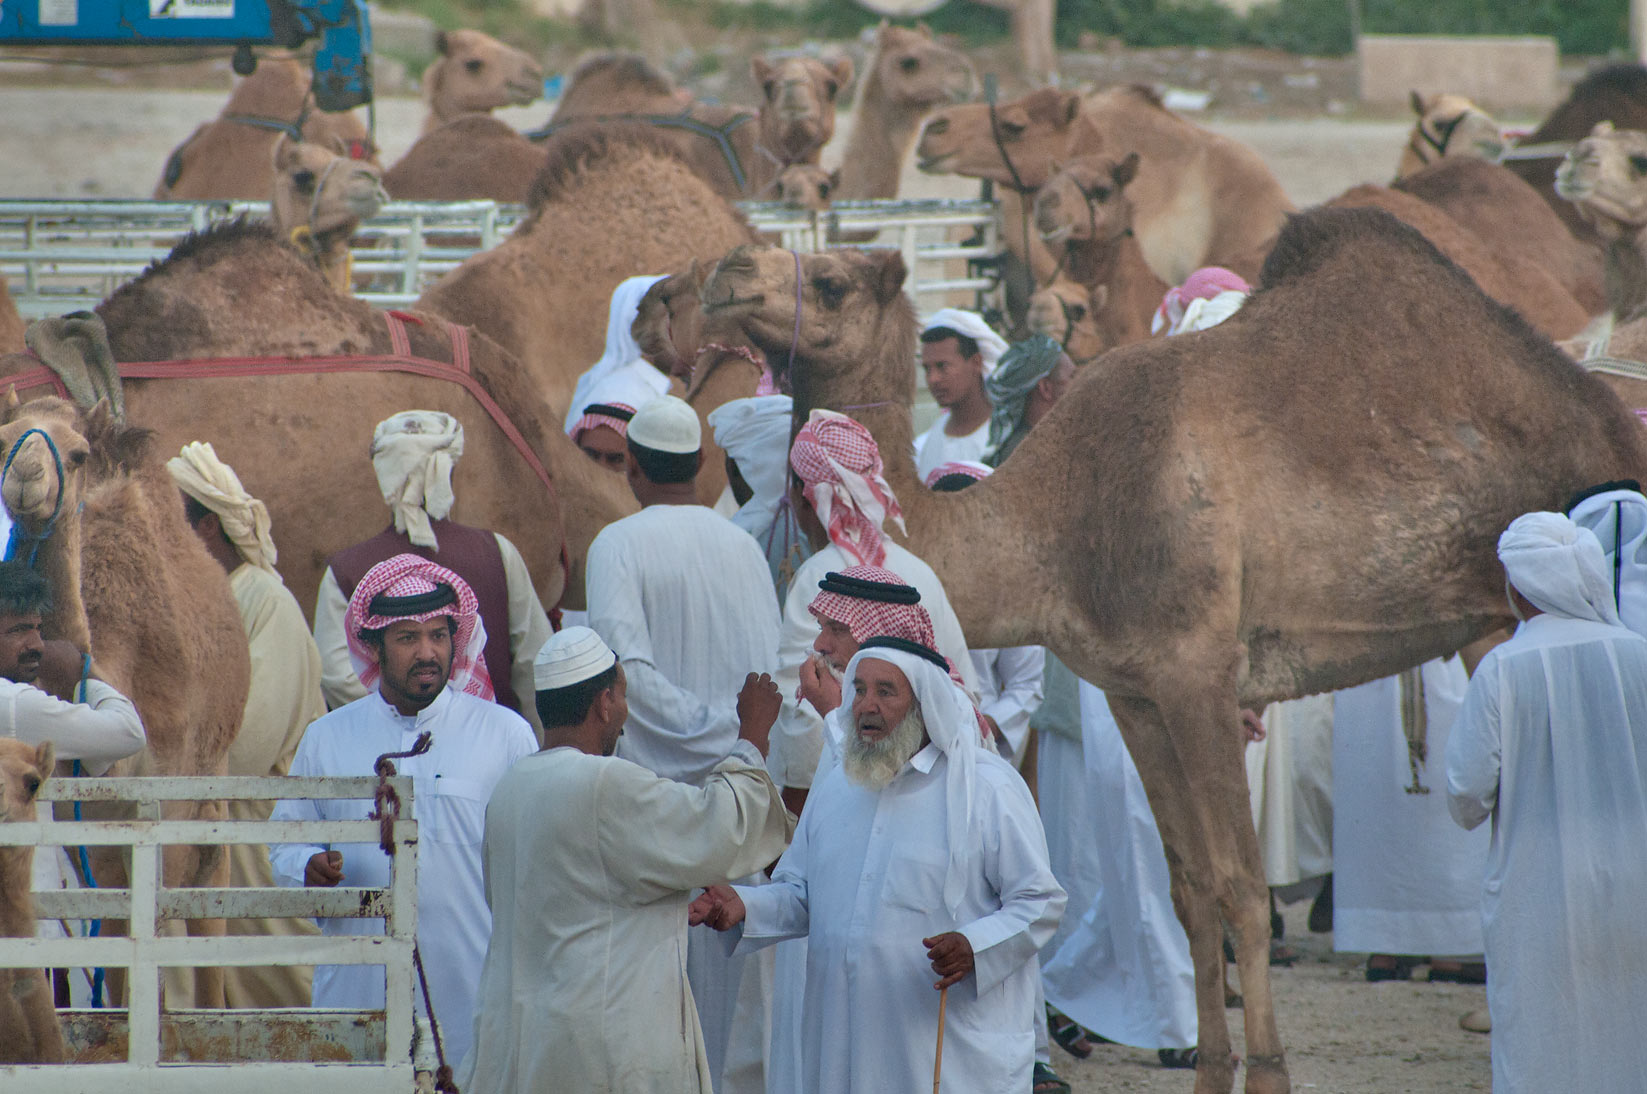 Morning greetings in racing section of Camel Market, Wholesale Markets area. Doha, Qatar